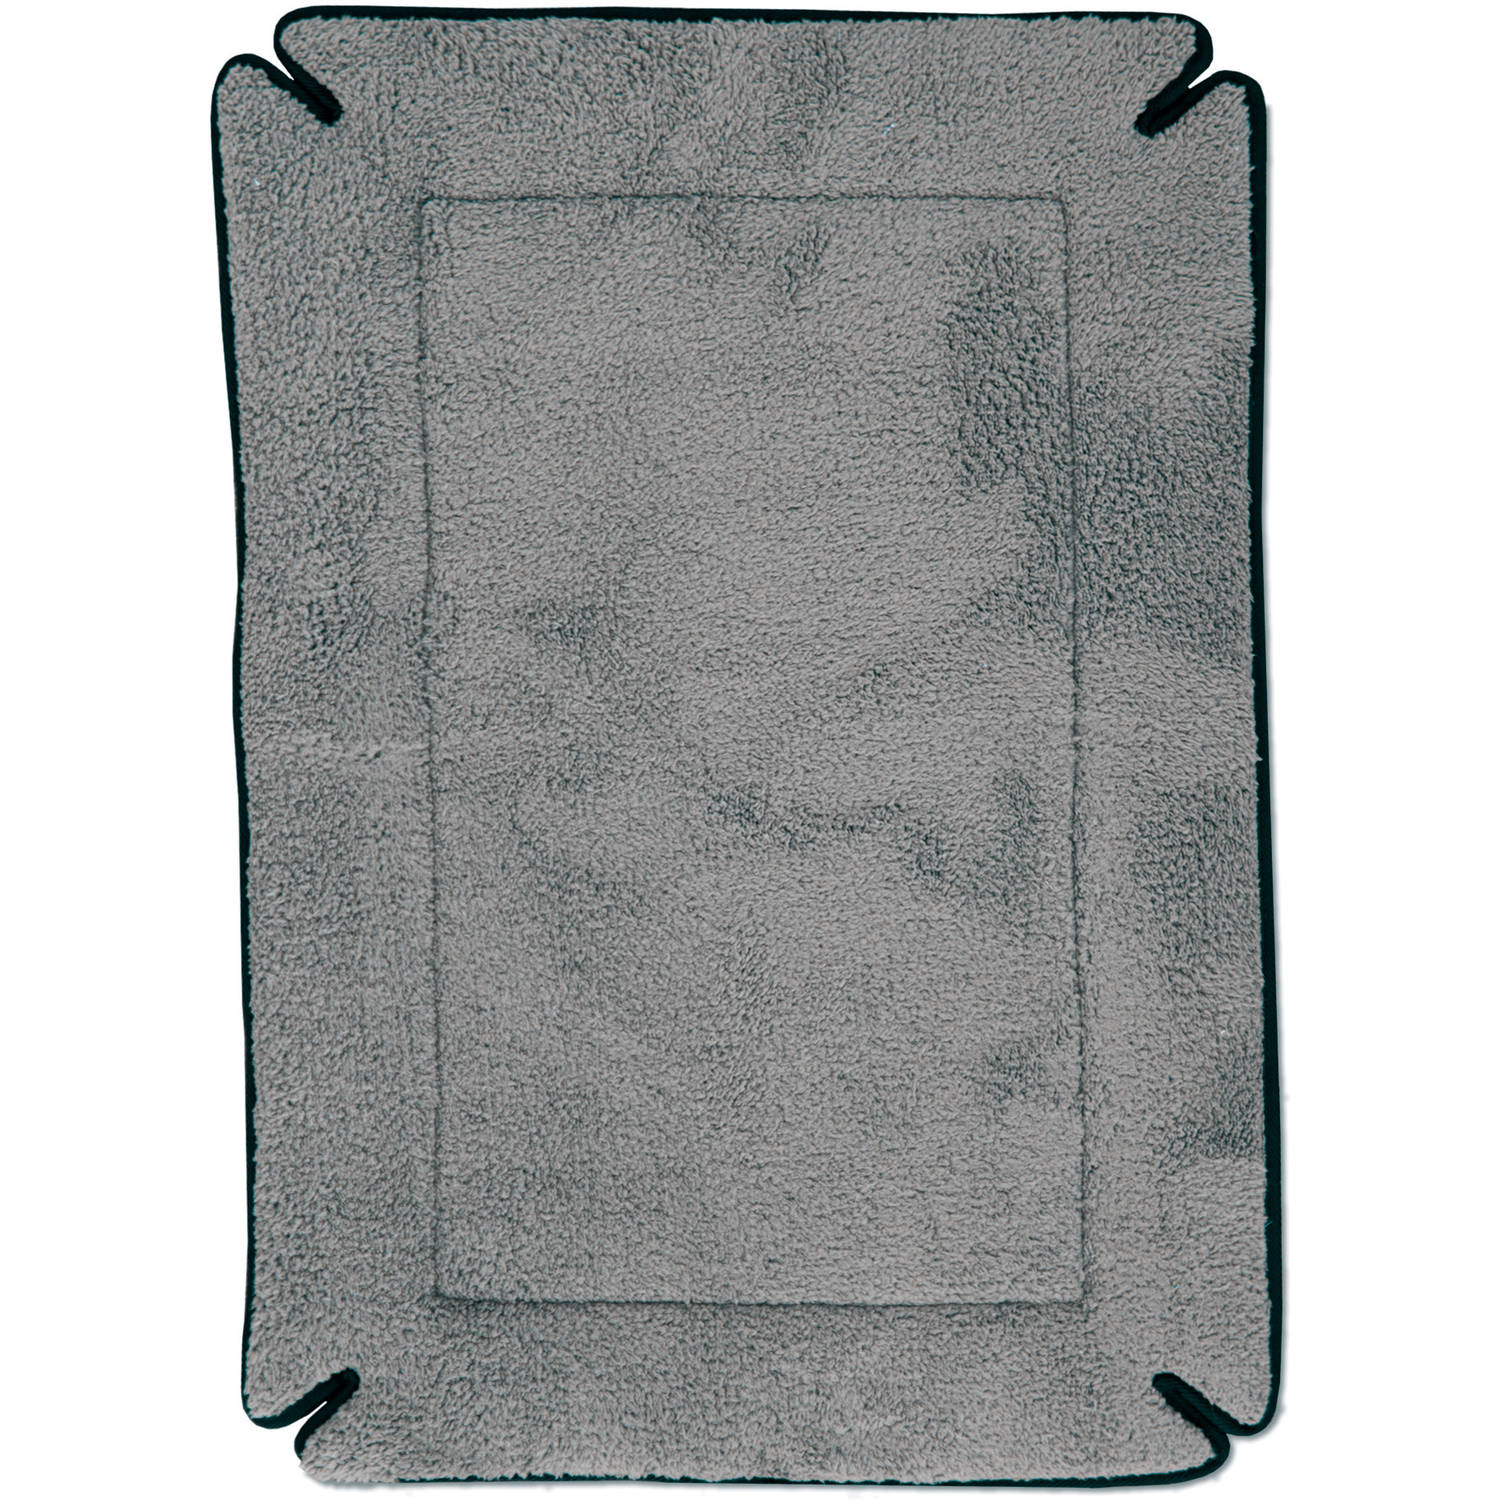 "K&H Pet Products Memory Foam Crate Pad, Grey, 32"" x 48"""